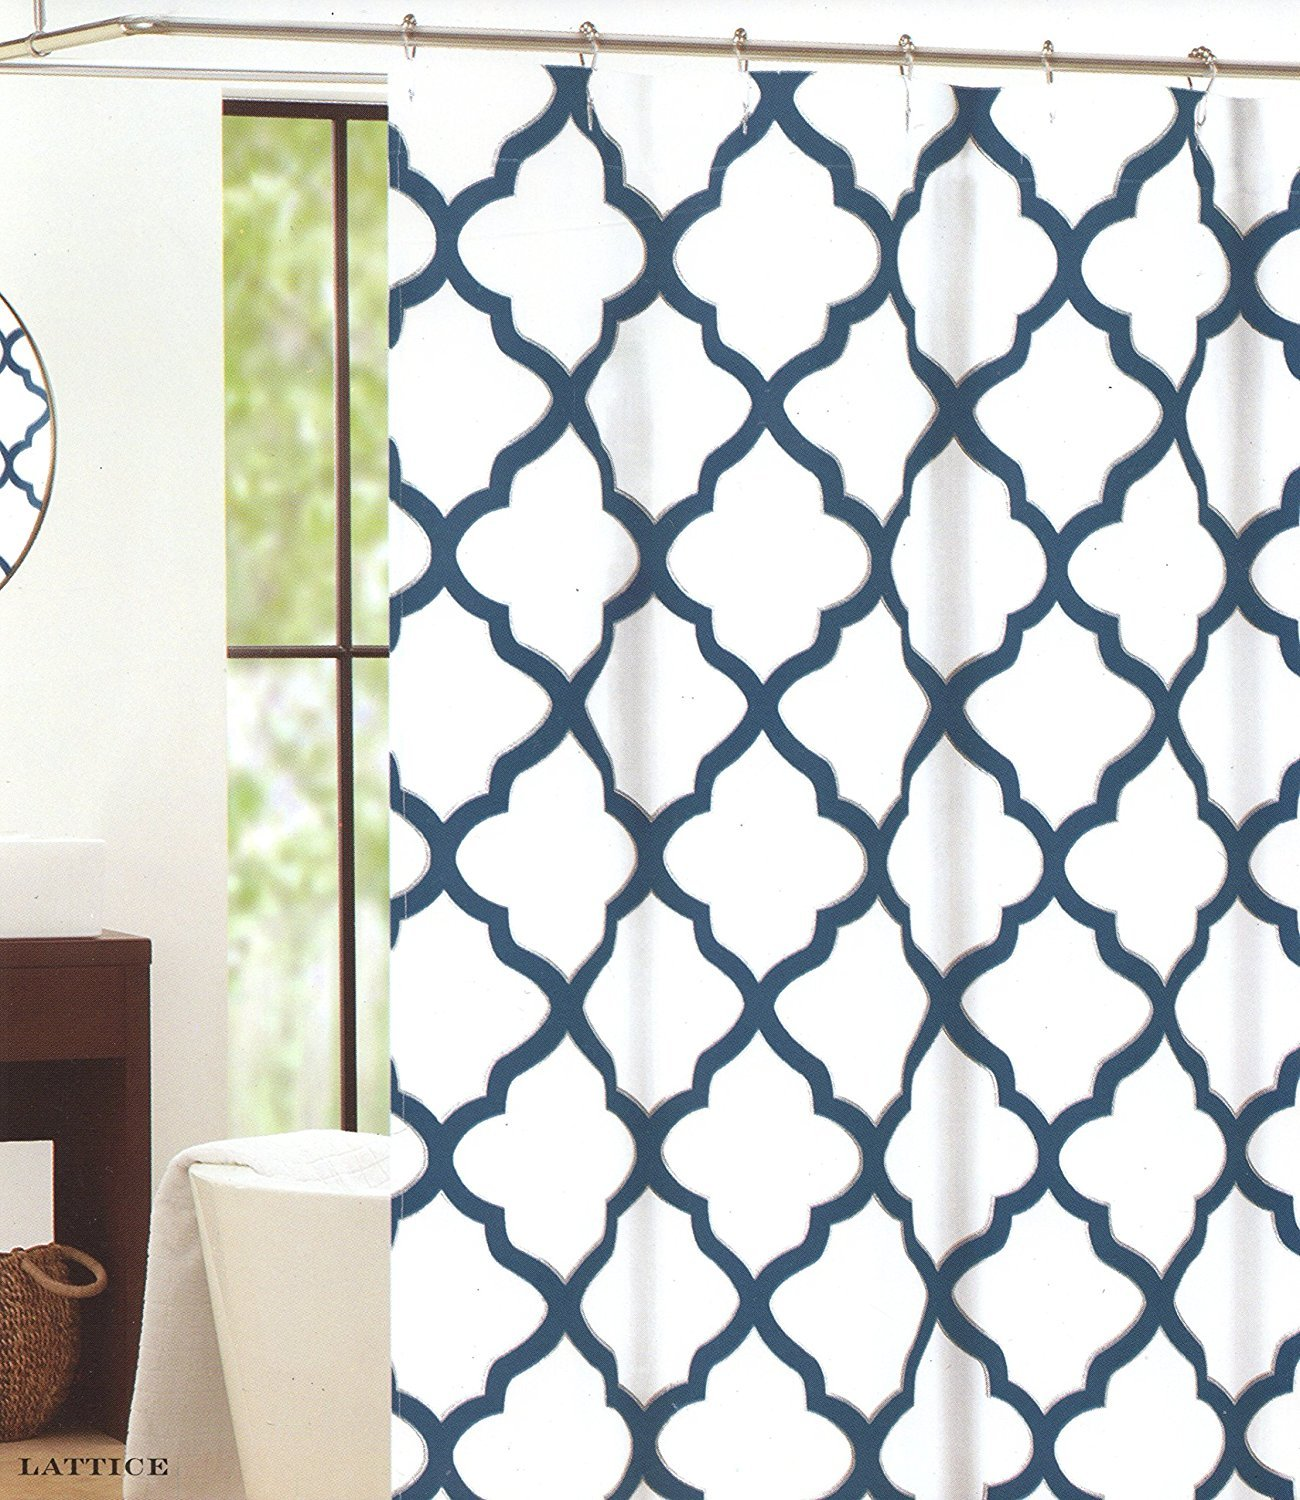 Moroccan curtains fabrics - Memory Home Waterproof Polyester Fabric Shower Curtain Moroccan Tile Quatrefoil Blue Silver And White Lattice 70x72inch